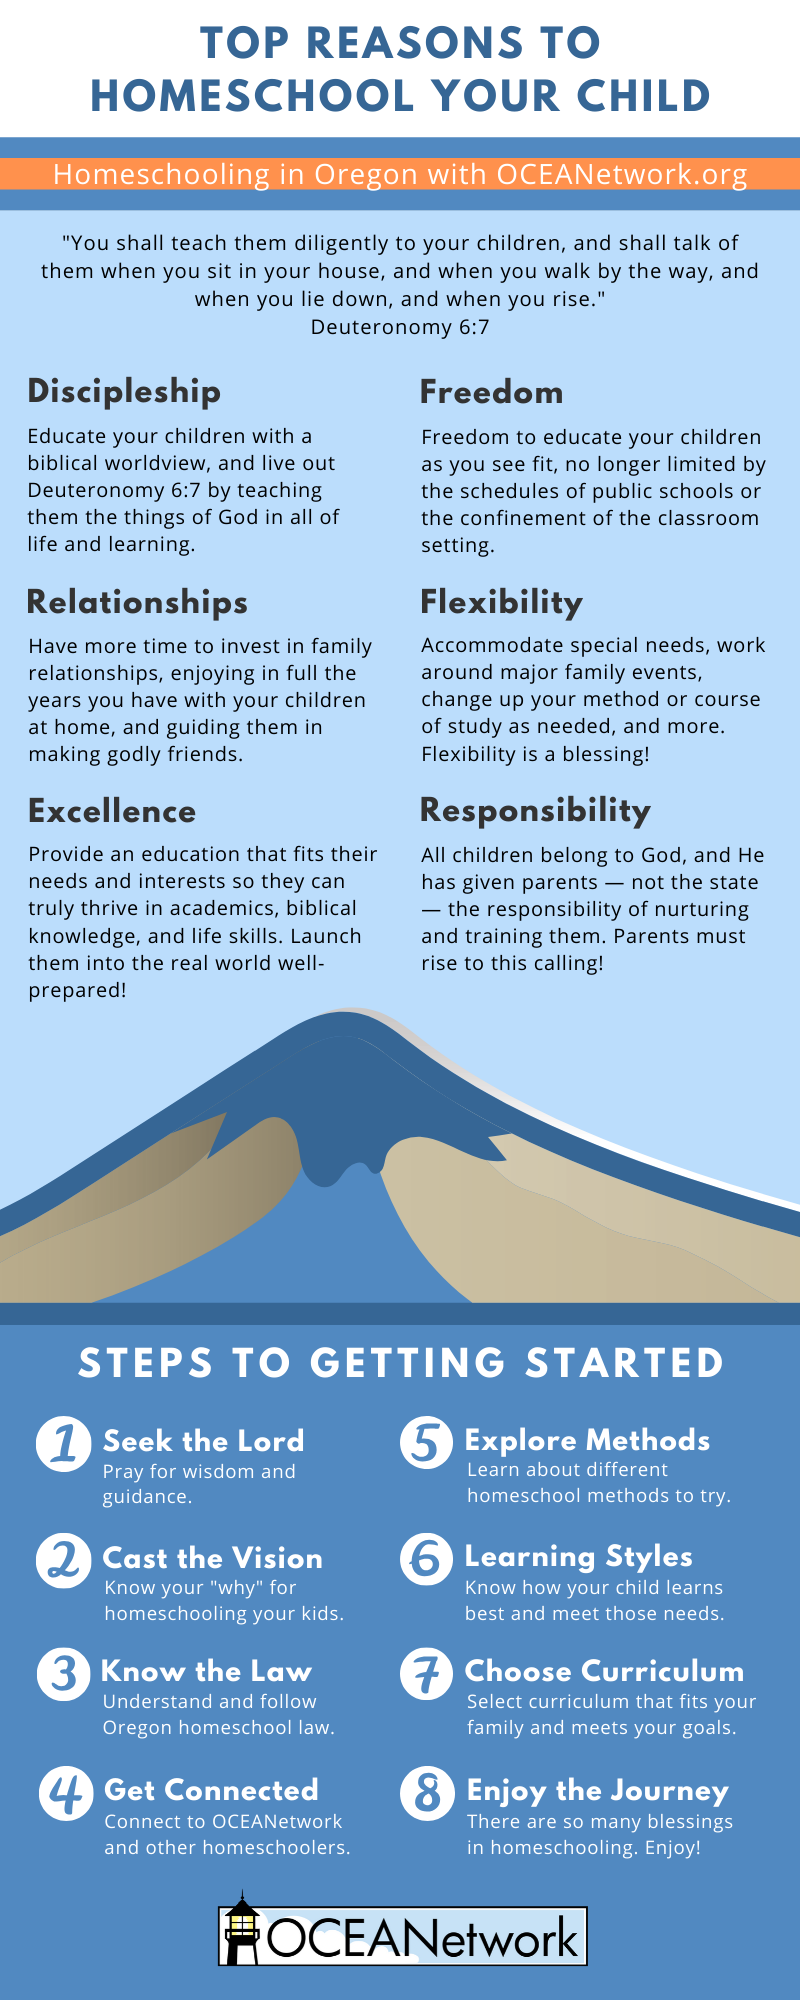 Thinking of of homeschooling? Here are the top reasons to homeschool and a quick start guide!